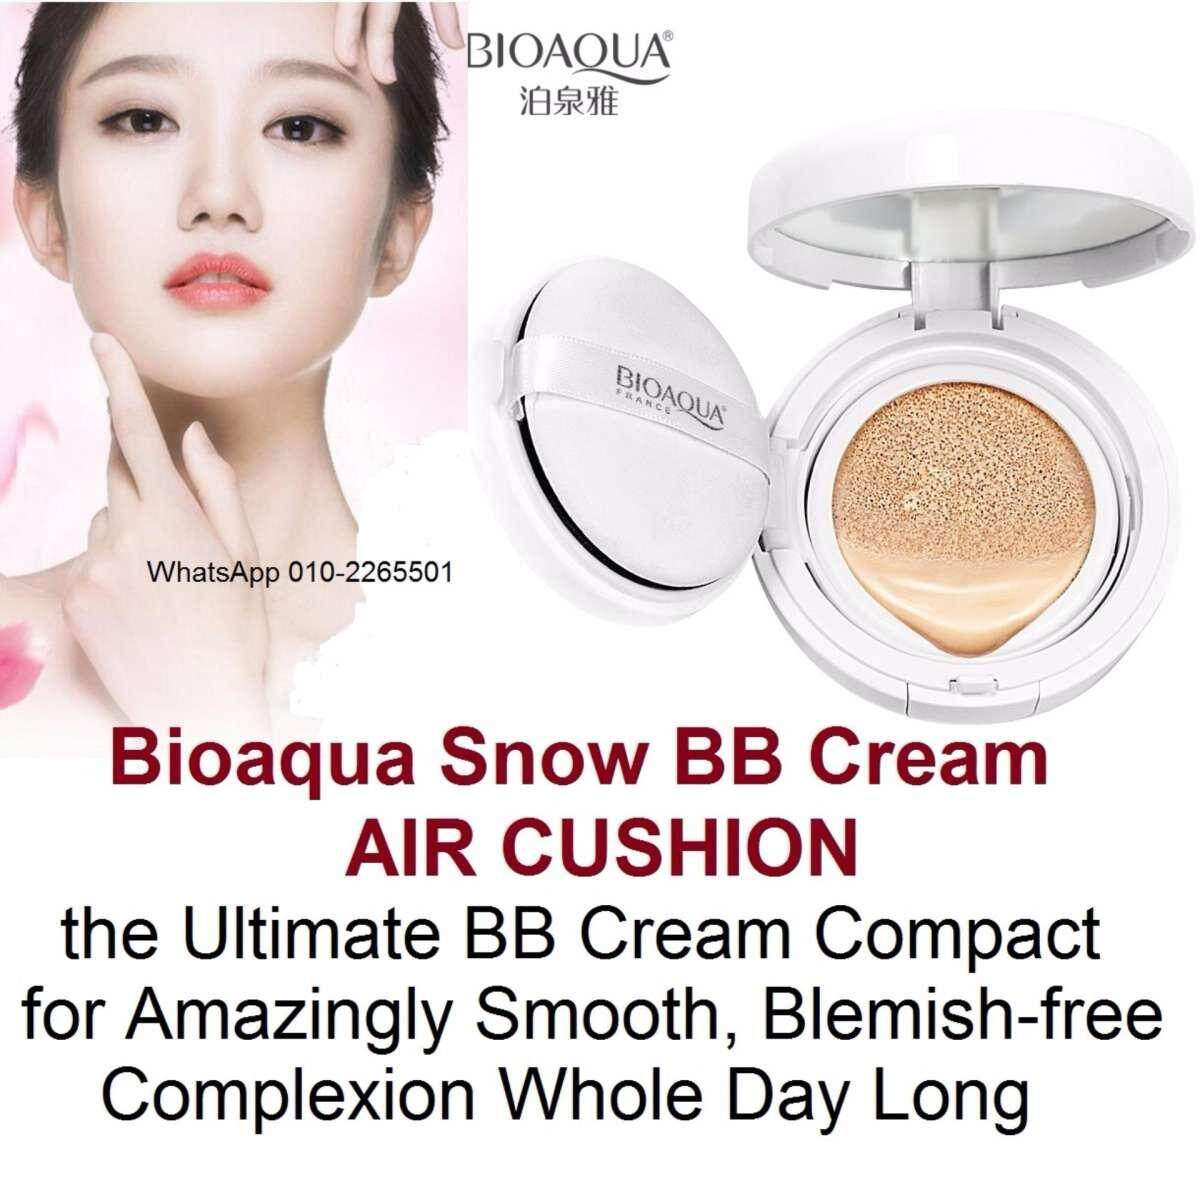 Sell Velvet Cc Cream Cheapest Best Quality My Store Ivory White 02 Bioaqua Bb Cushion Exquisite Delicate Plus Refill Myr 13 Free Shipping Snow